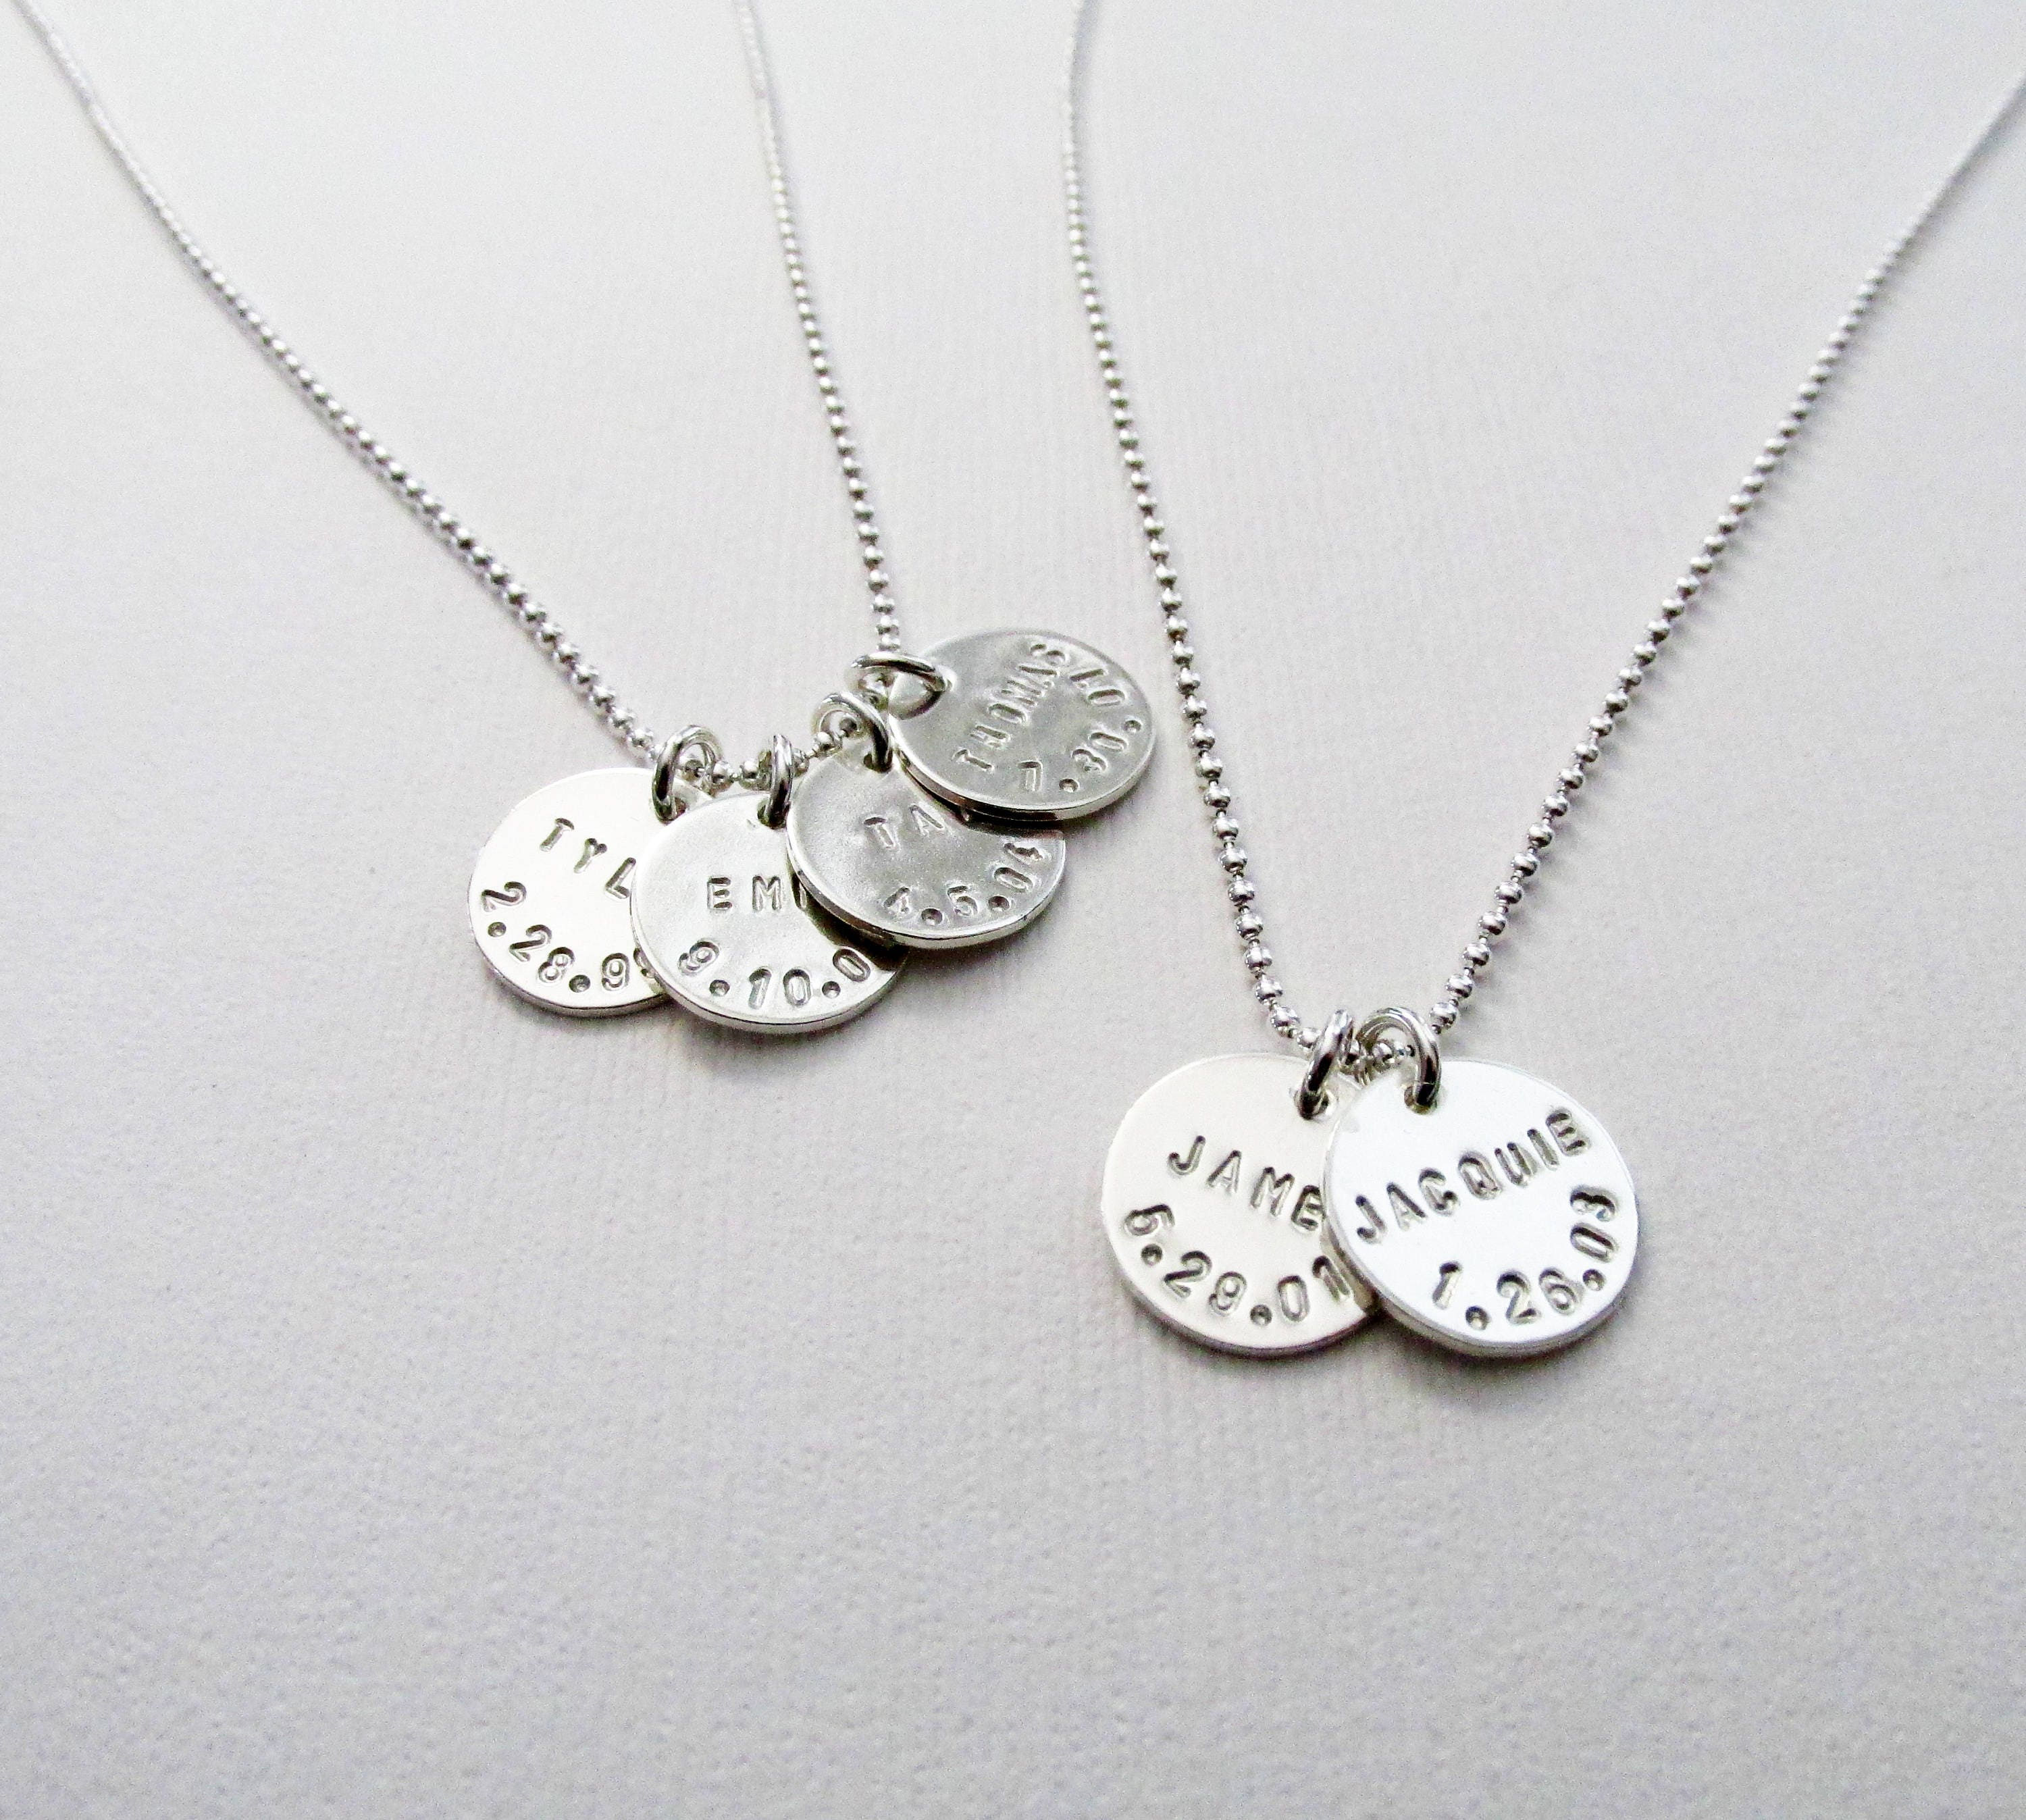 lover necklace necklaces com heart engraved personalized custommade name pendant initials search jewelry pendants s